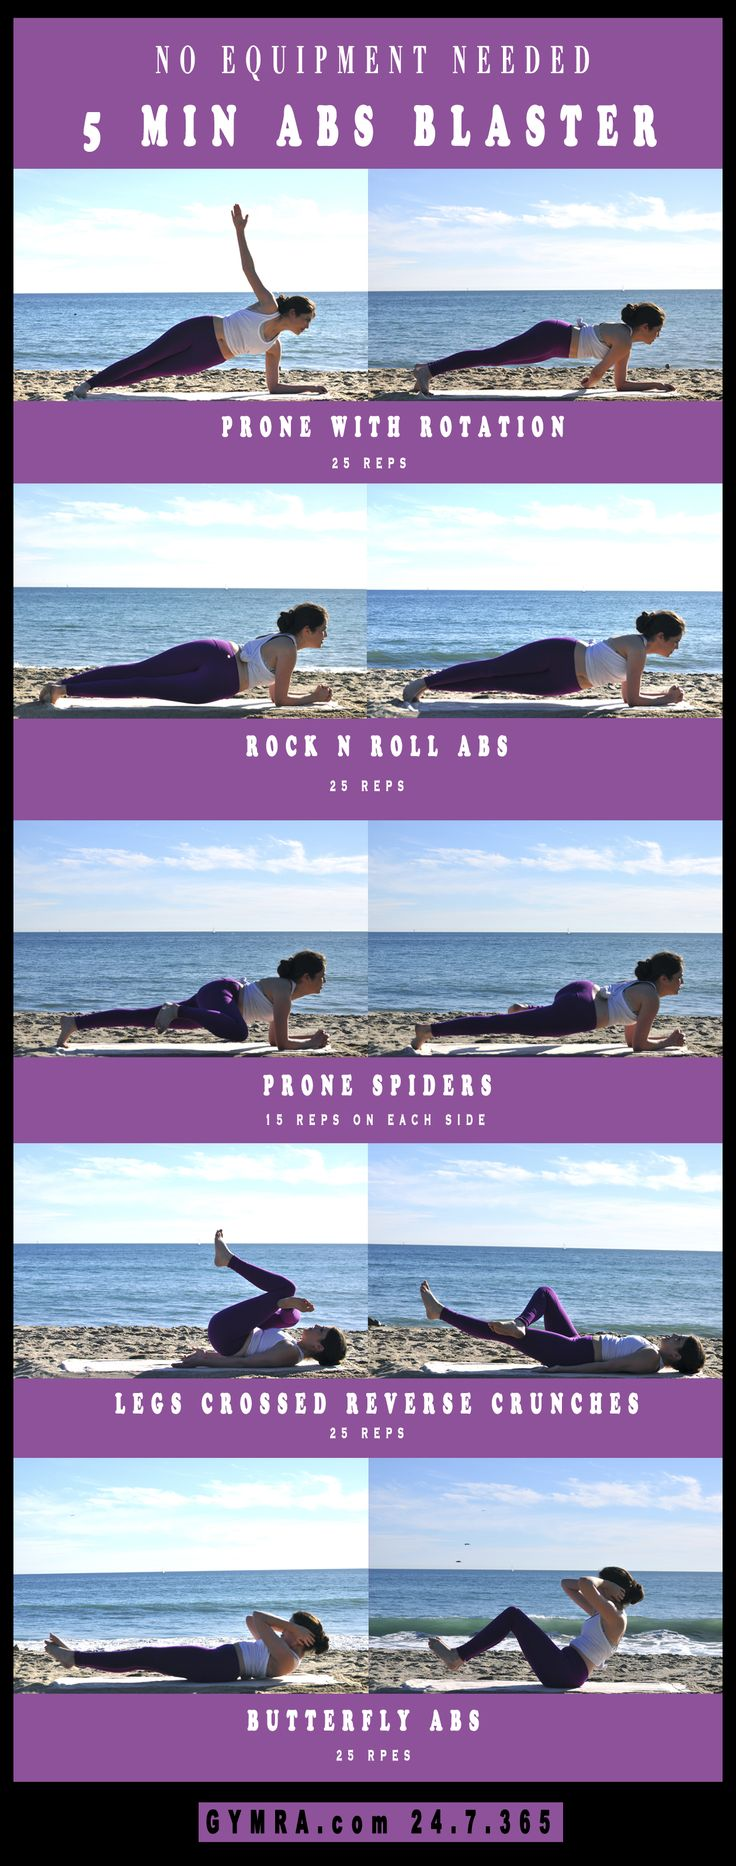 Tone up your #abs with this killer fitness routine from www.gymra.com! Get yourself in the best shape of your life with www.gymra.com. Start your free month now!!! Cancel anytime. #fitness #exercise #abs#motivational #workouts #shape#health